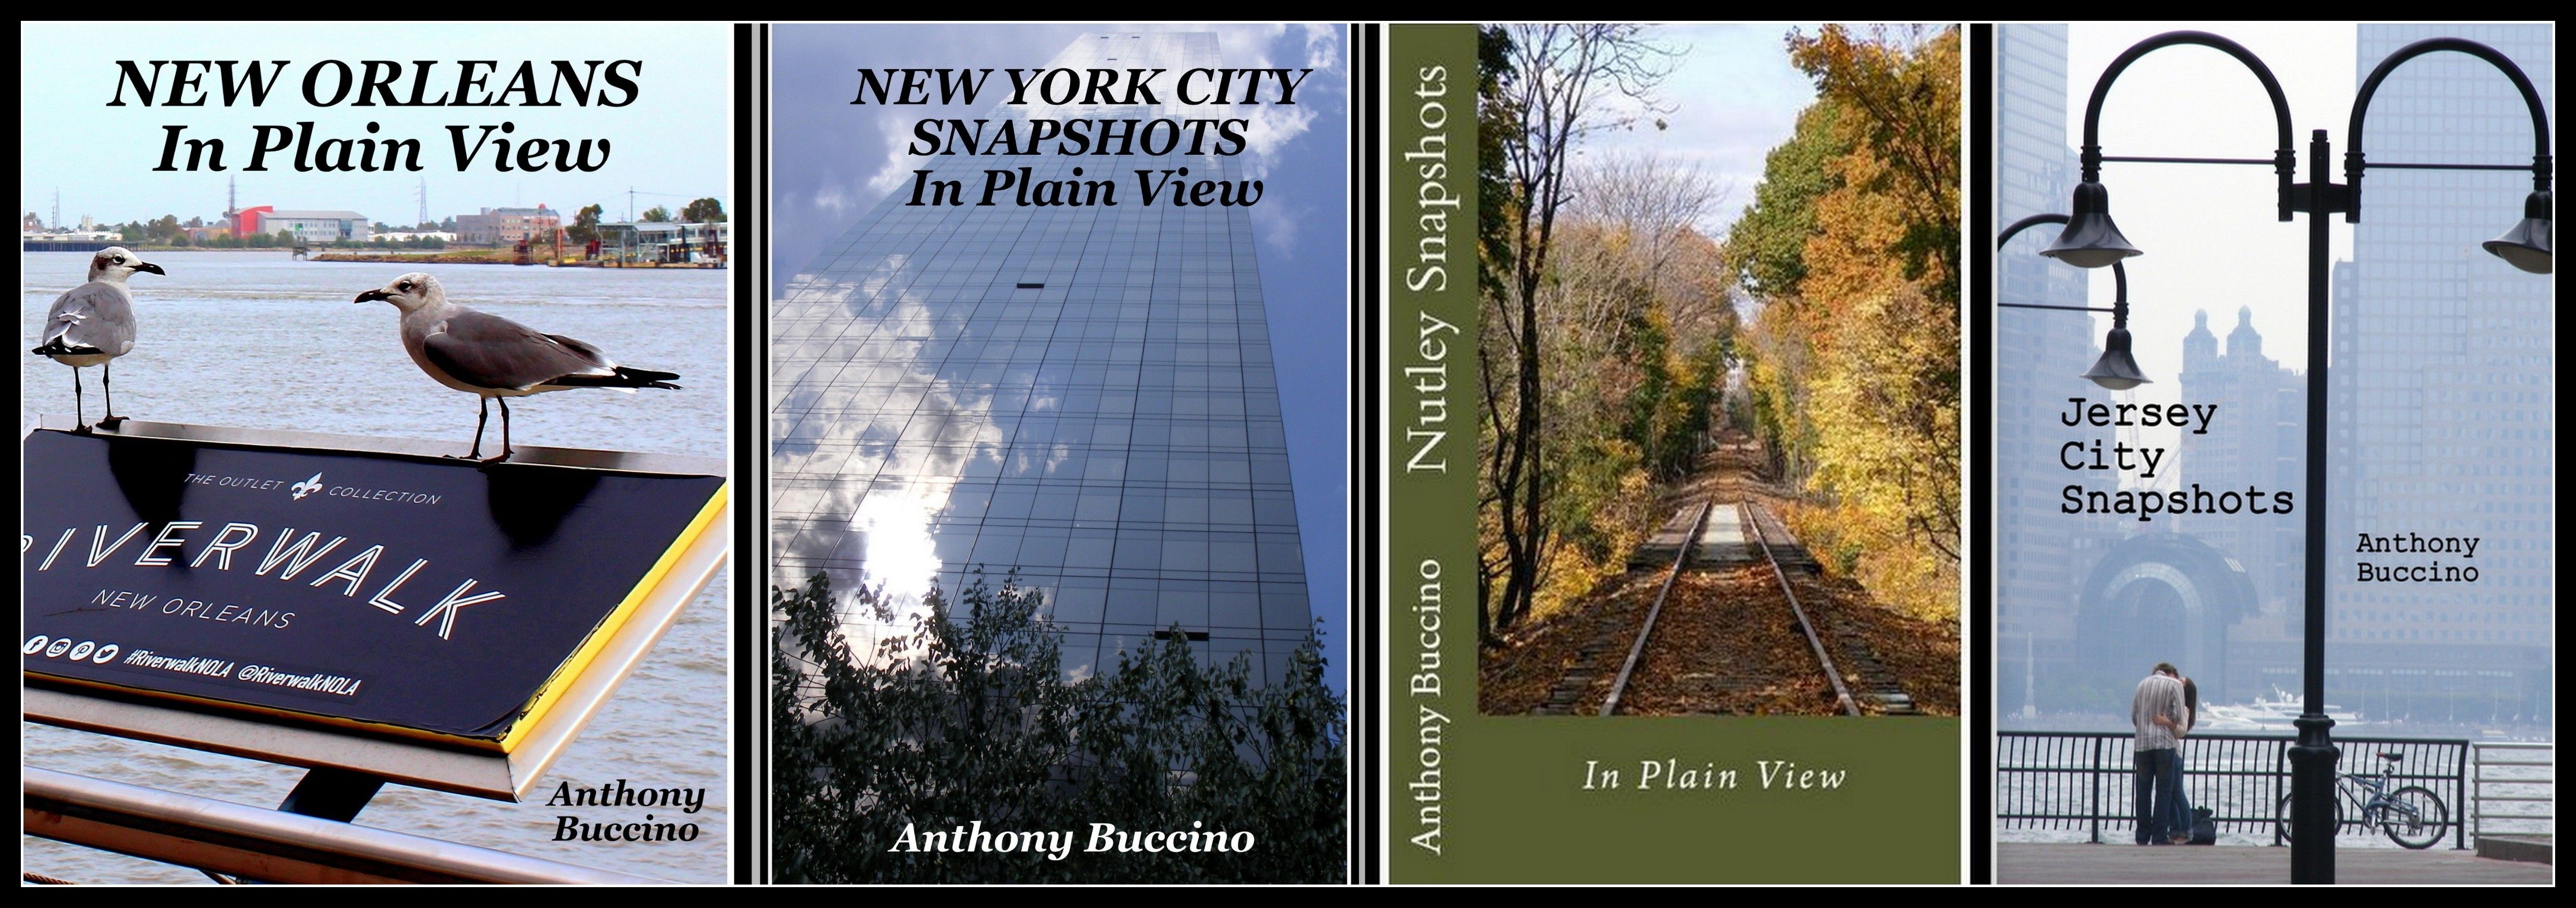 Photo collecctions, NOLA in Plain View, NYC In Plain View, JC Snapshots, Nutley Snapshots, photo books by Anthony Buccino